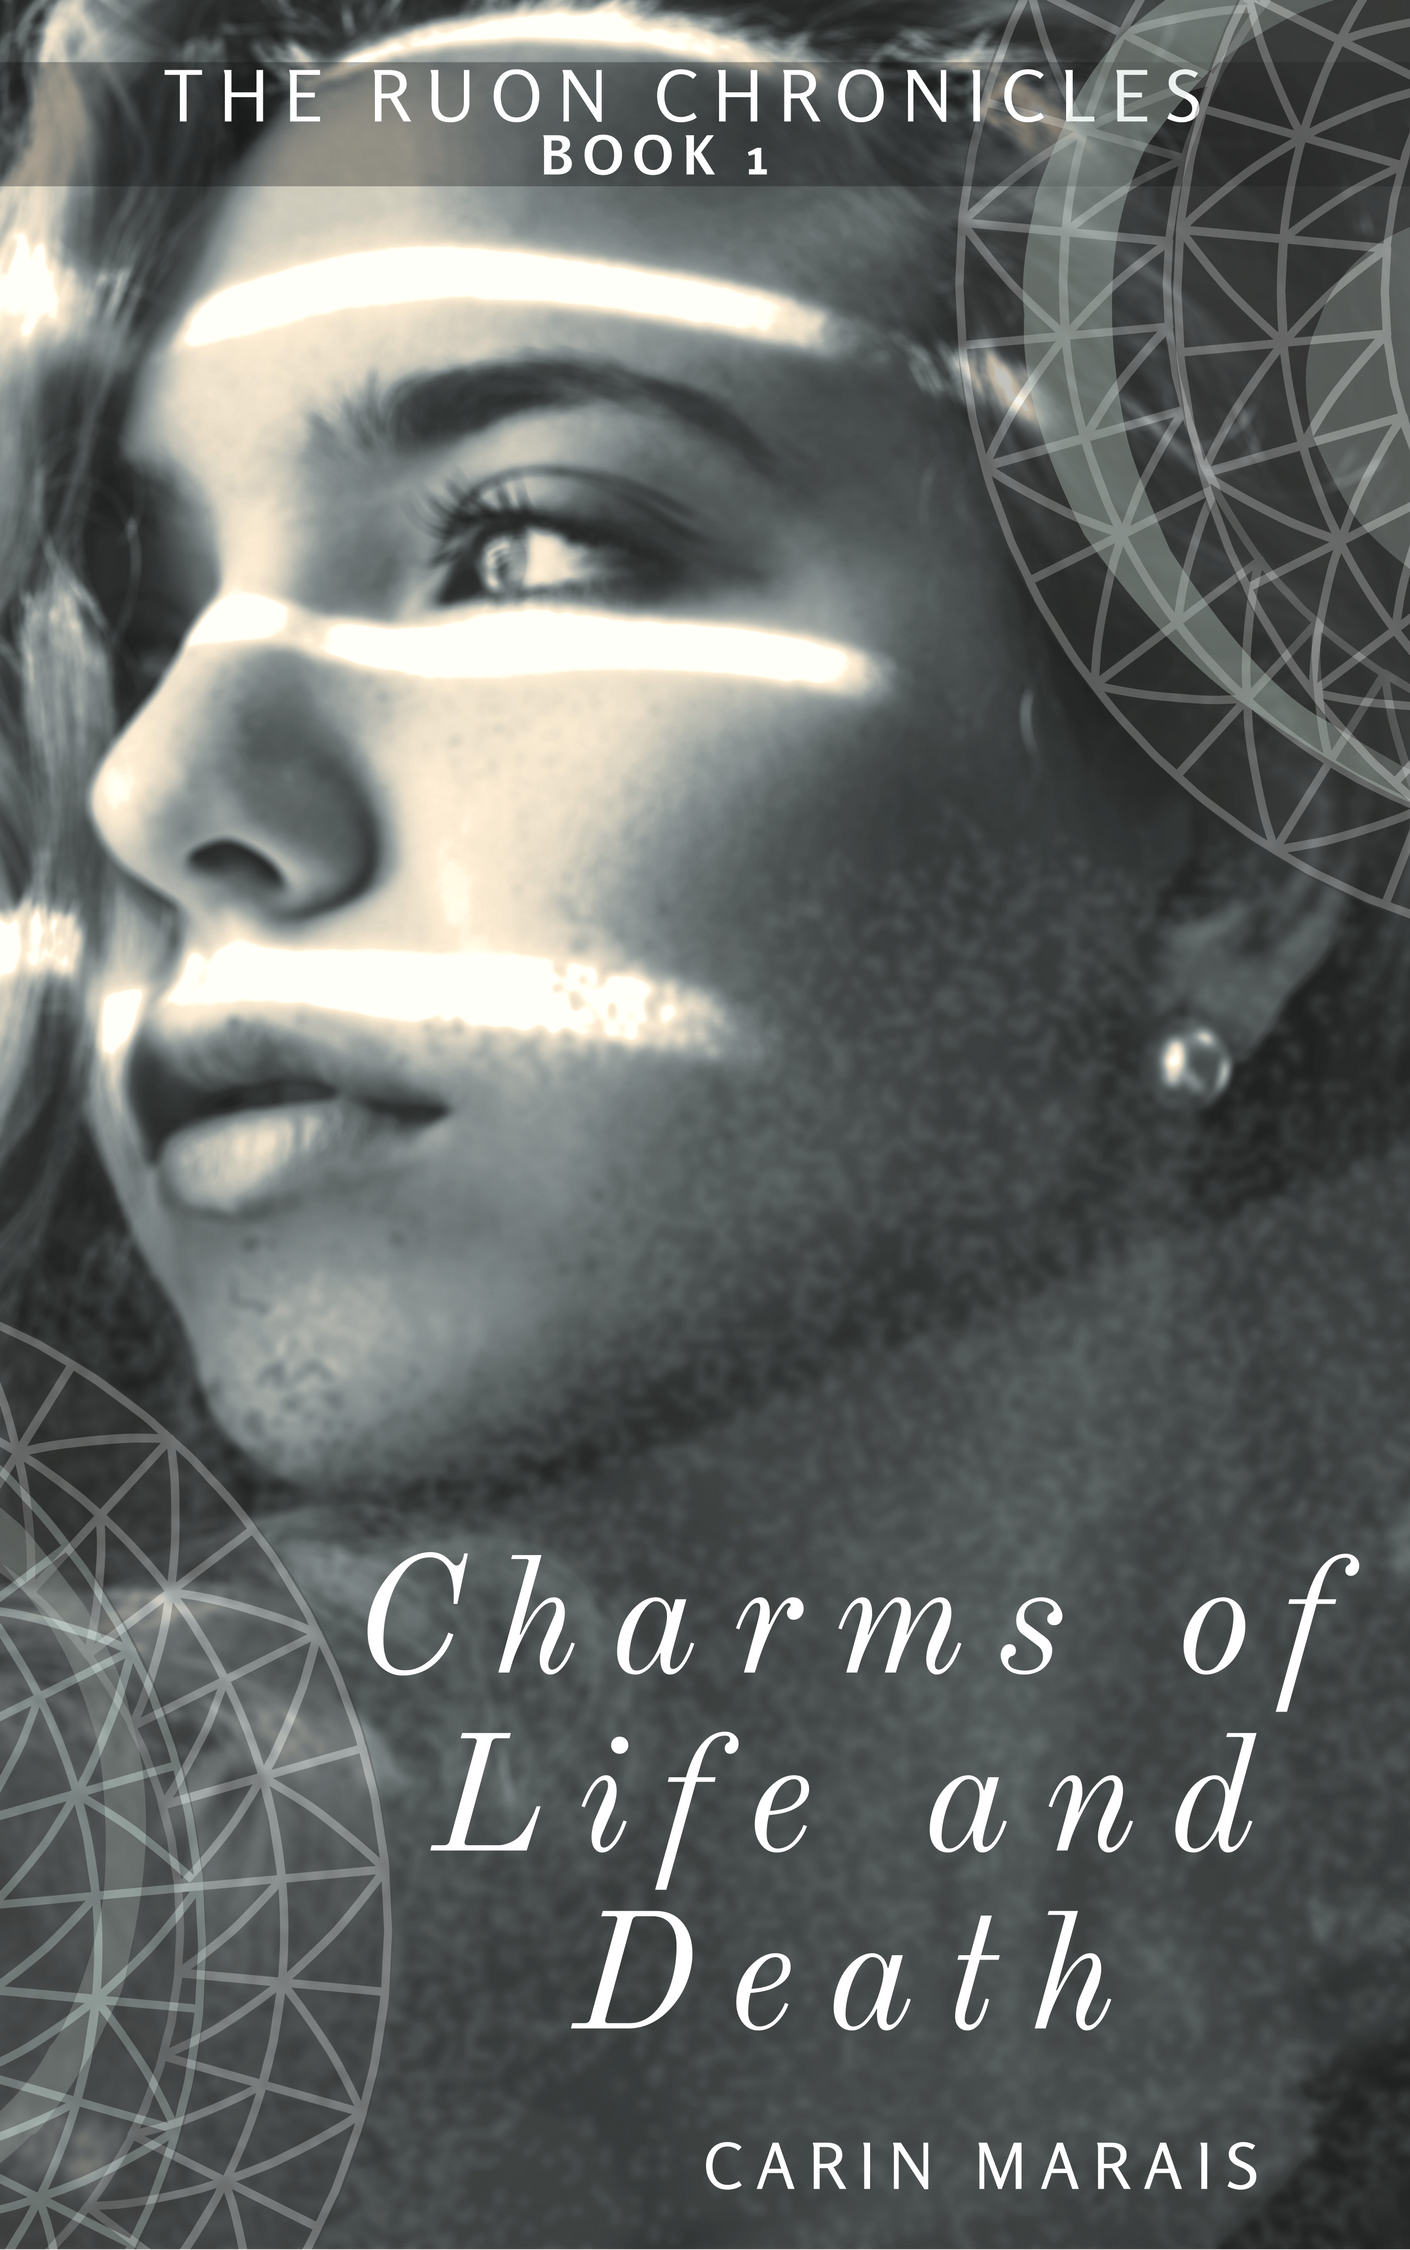 copy-of-charms-of-life-and-death